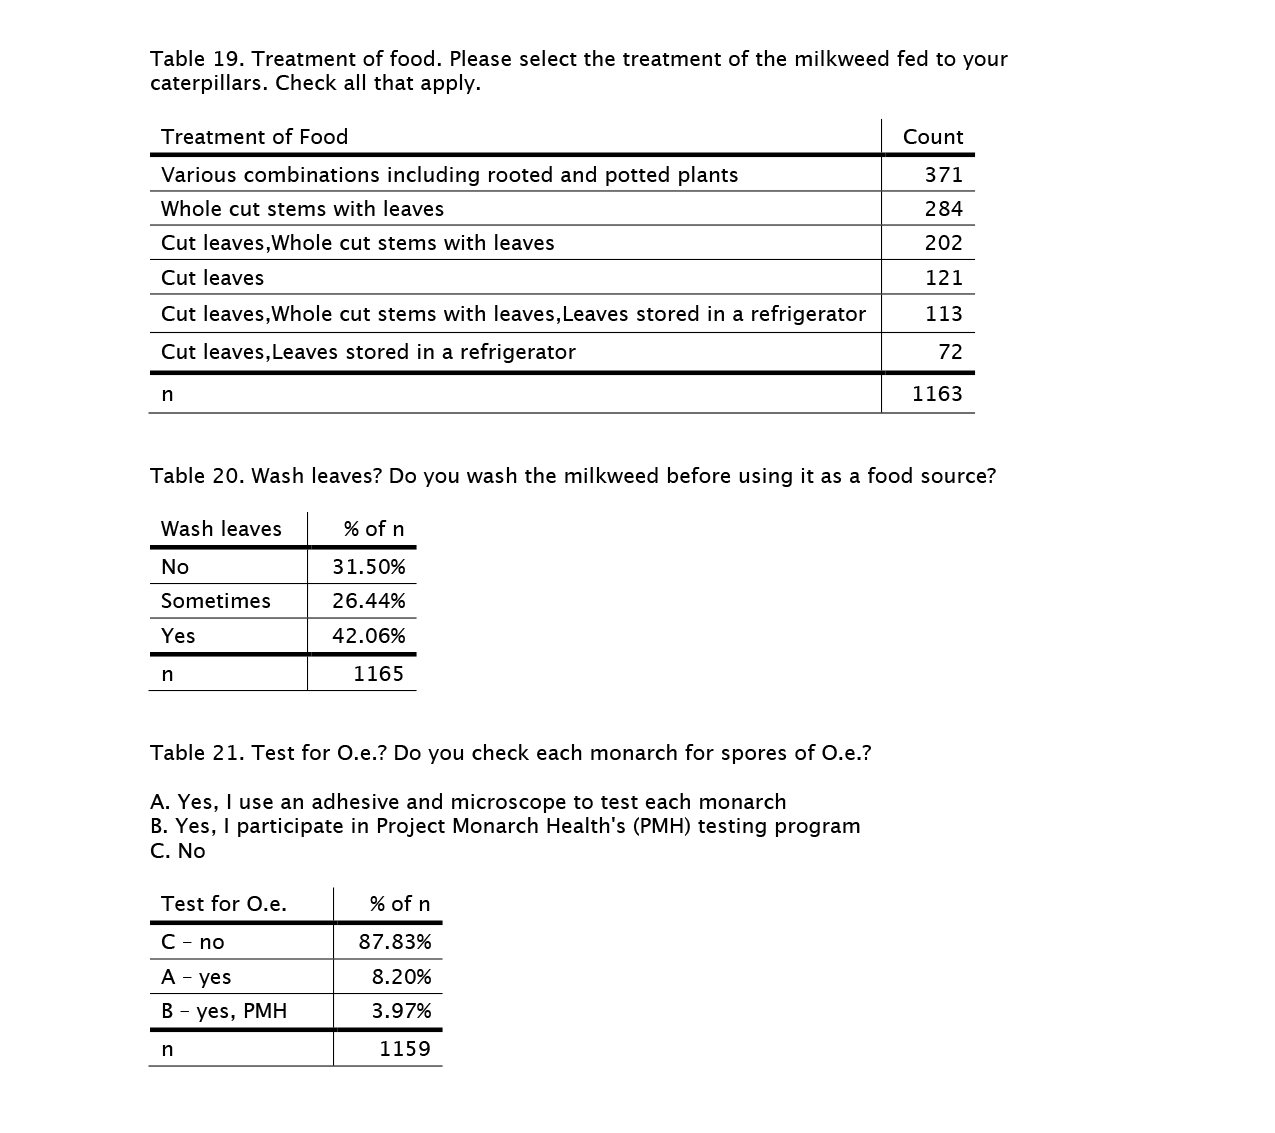 rearing-survey-tables-19-21